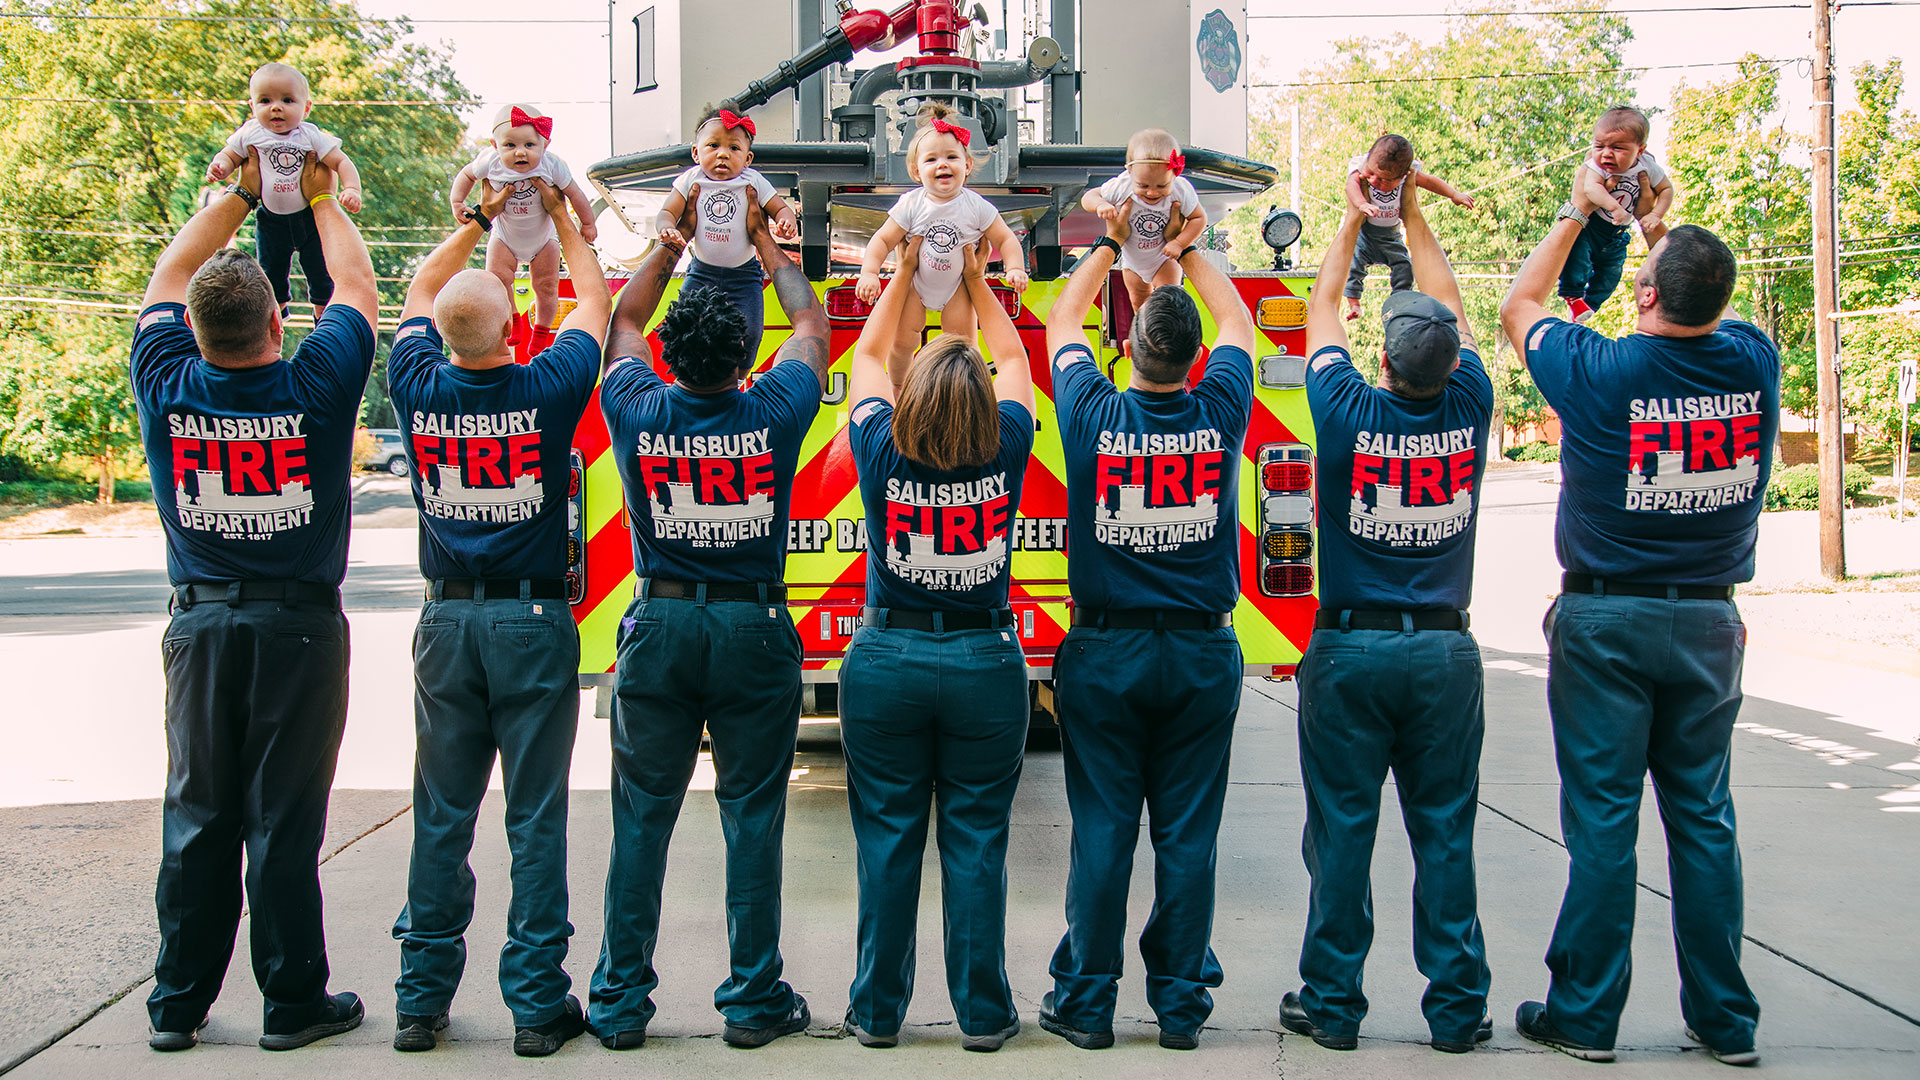 WATCH: North Carolina Firefighters Celebrate Baby Boom with Adorable Photoshoot